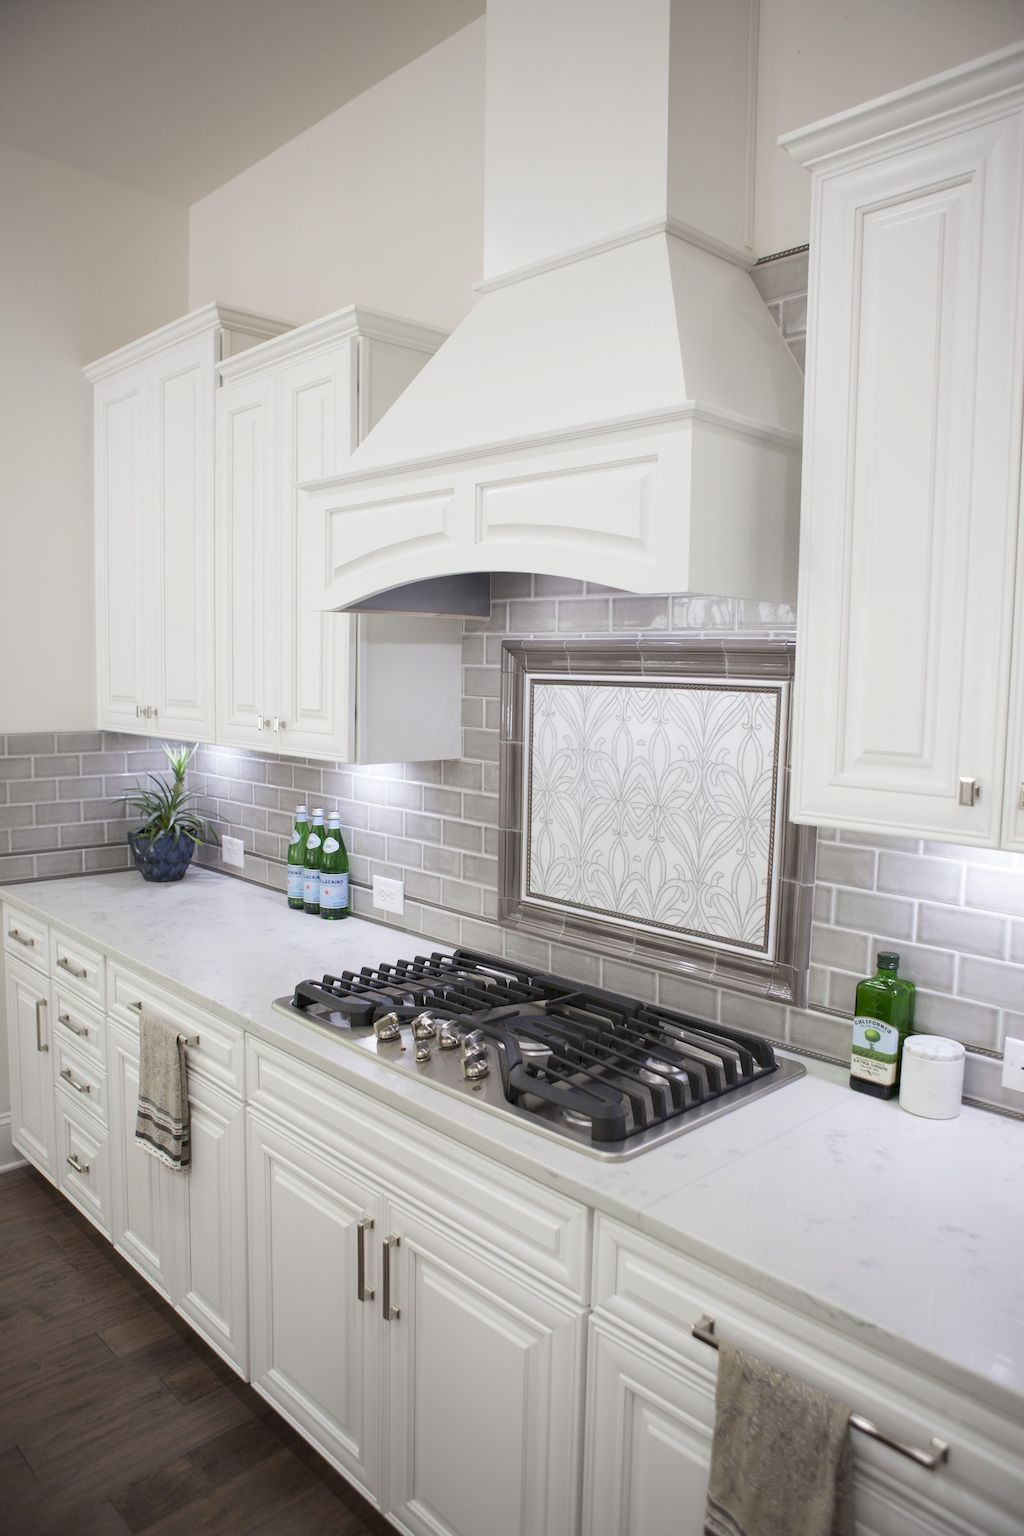 70 gorgeous farmhouse gray kitchen cabinet design ideas with images kitchen renovation new on kitchen decor grey cabinets id=29044